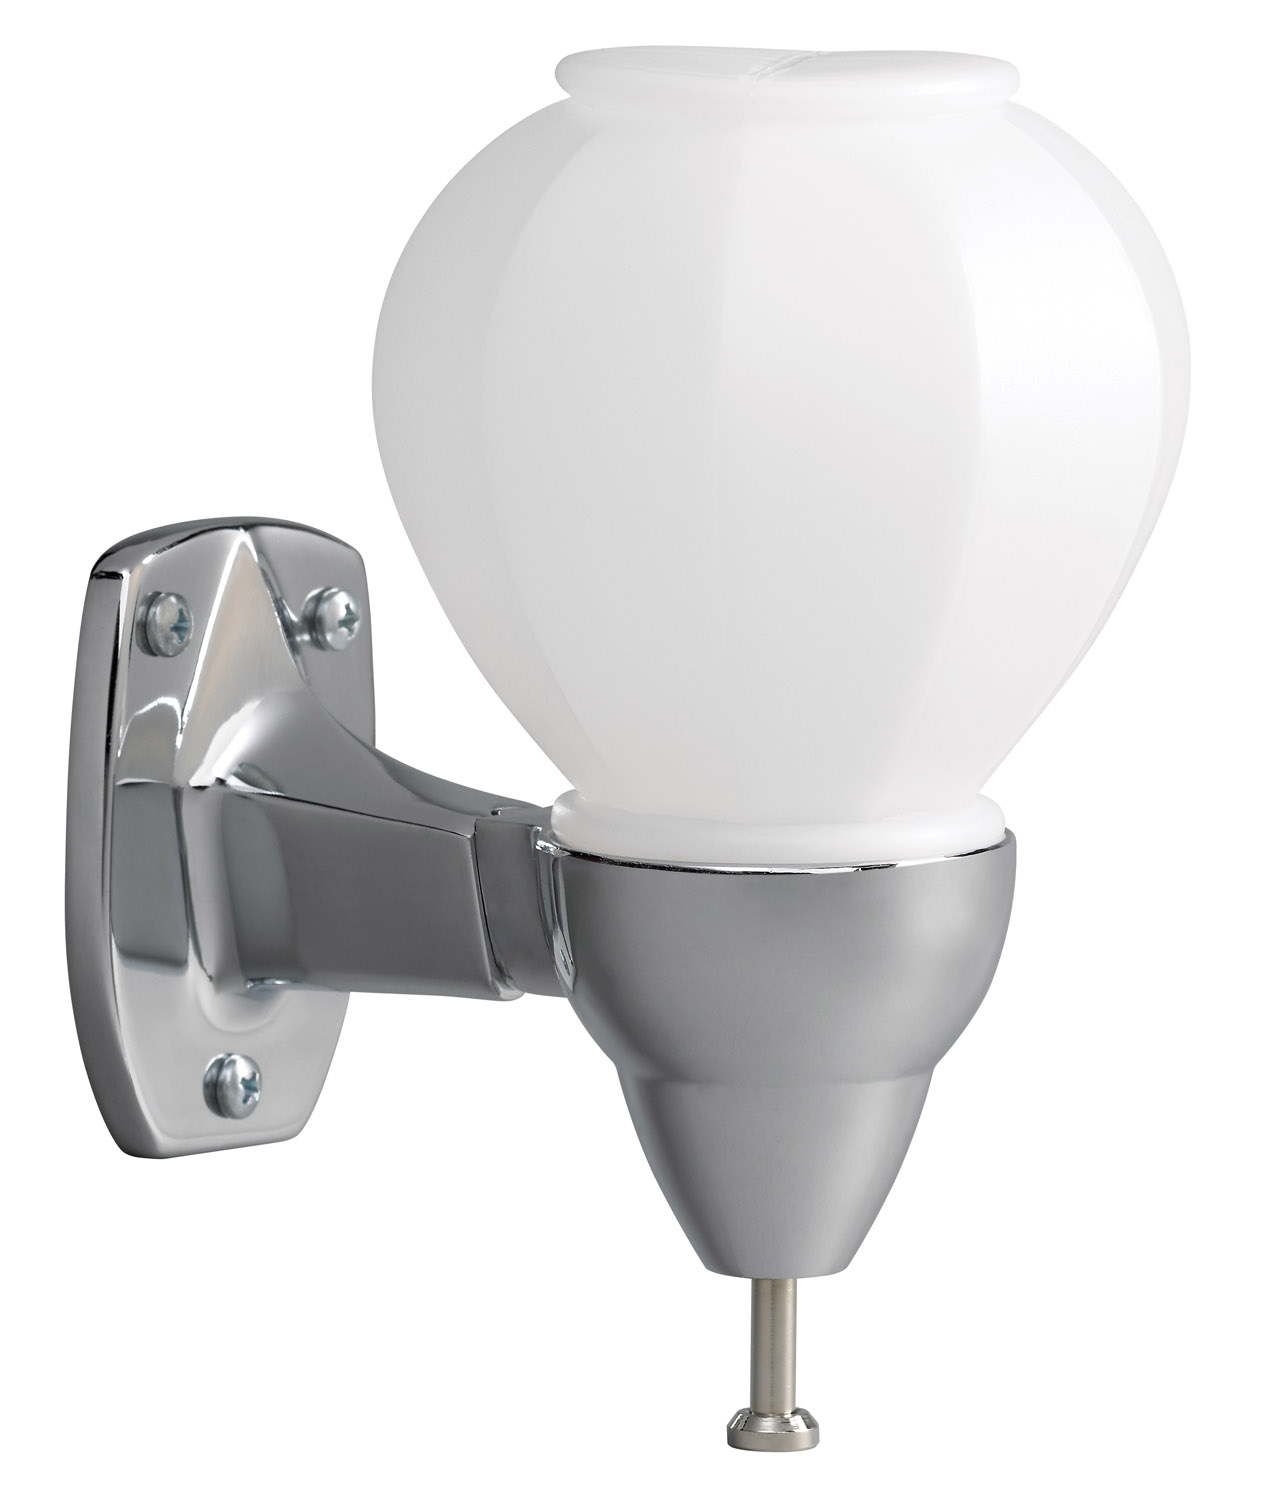 Wall Mounted Glass Soap Dispenser Surface Mounted Bulb Soap Dispenser Bradley Corporation